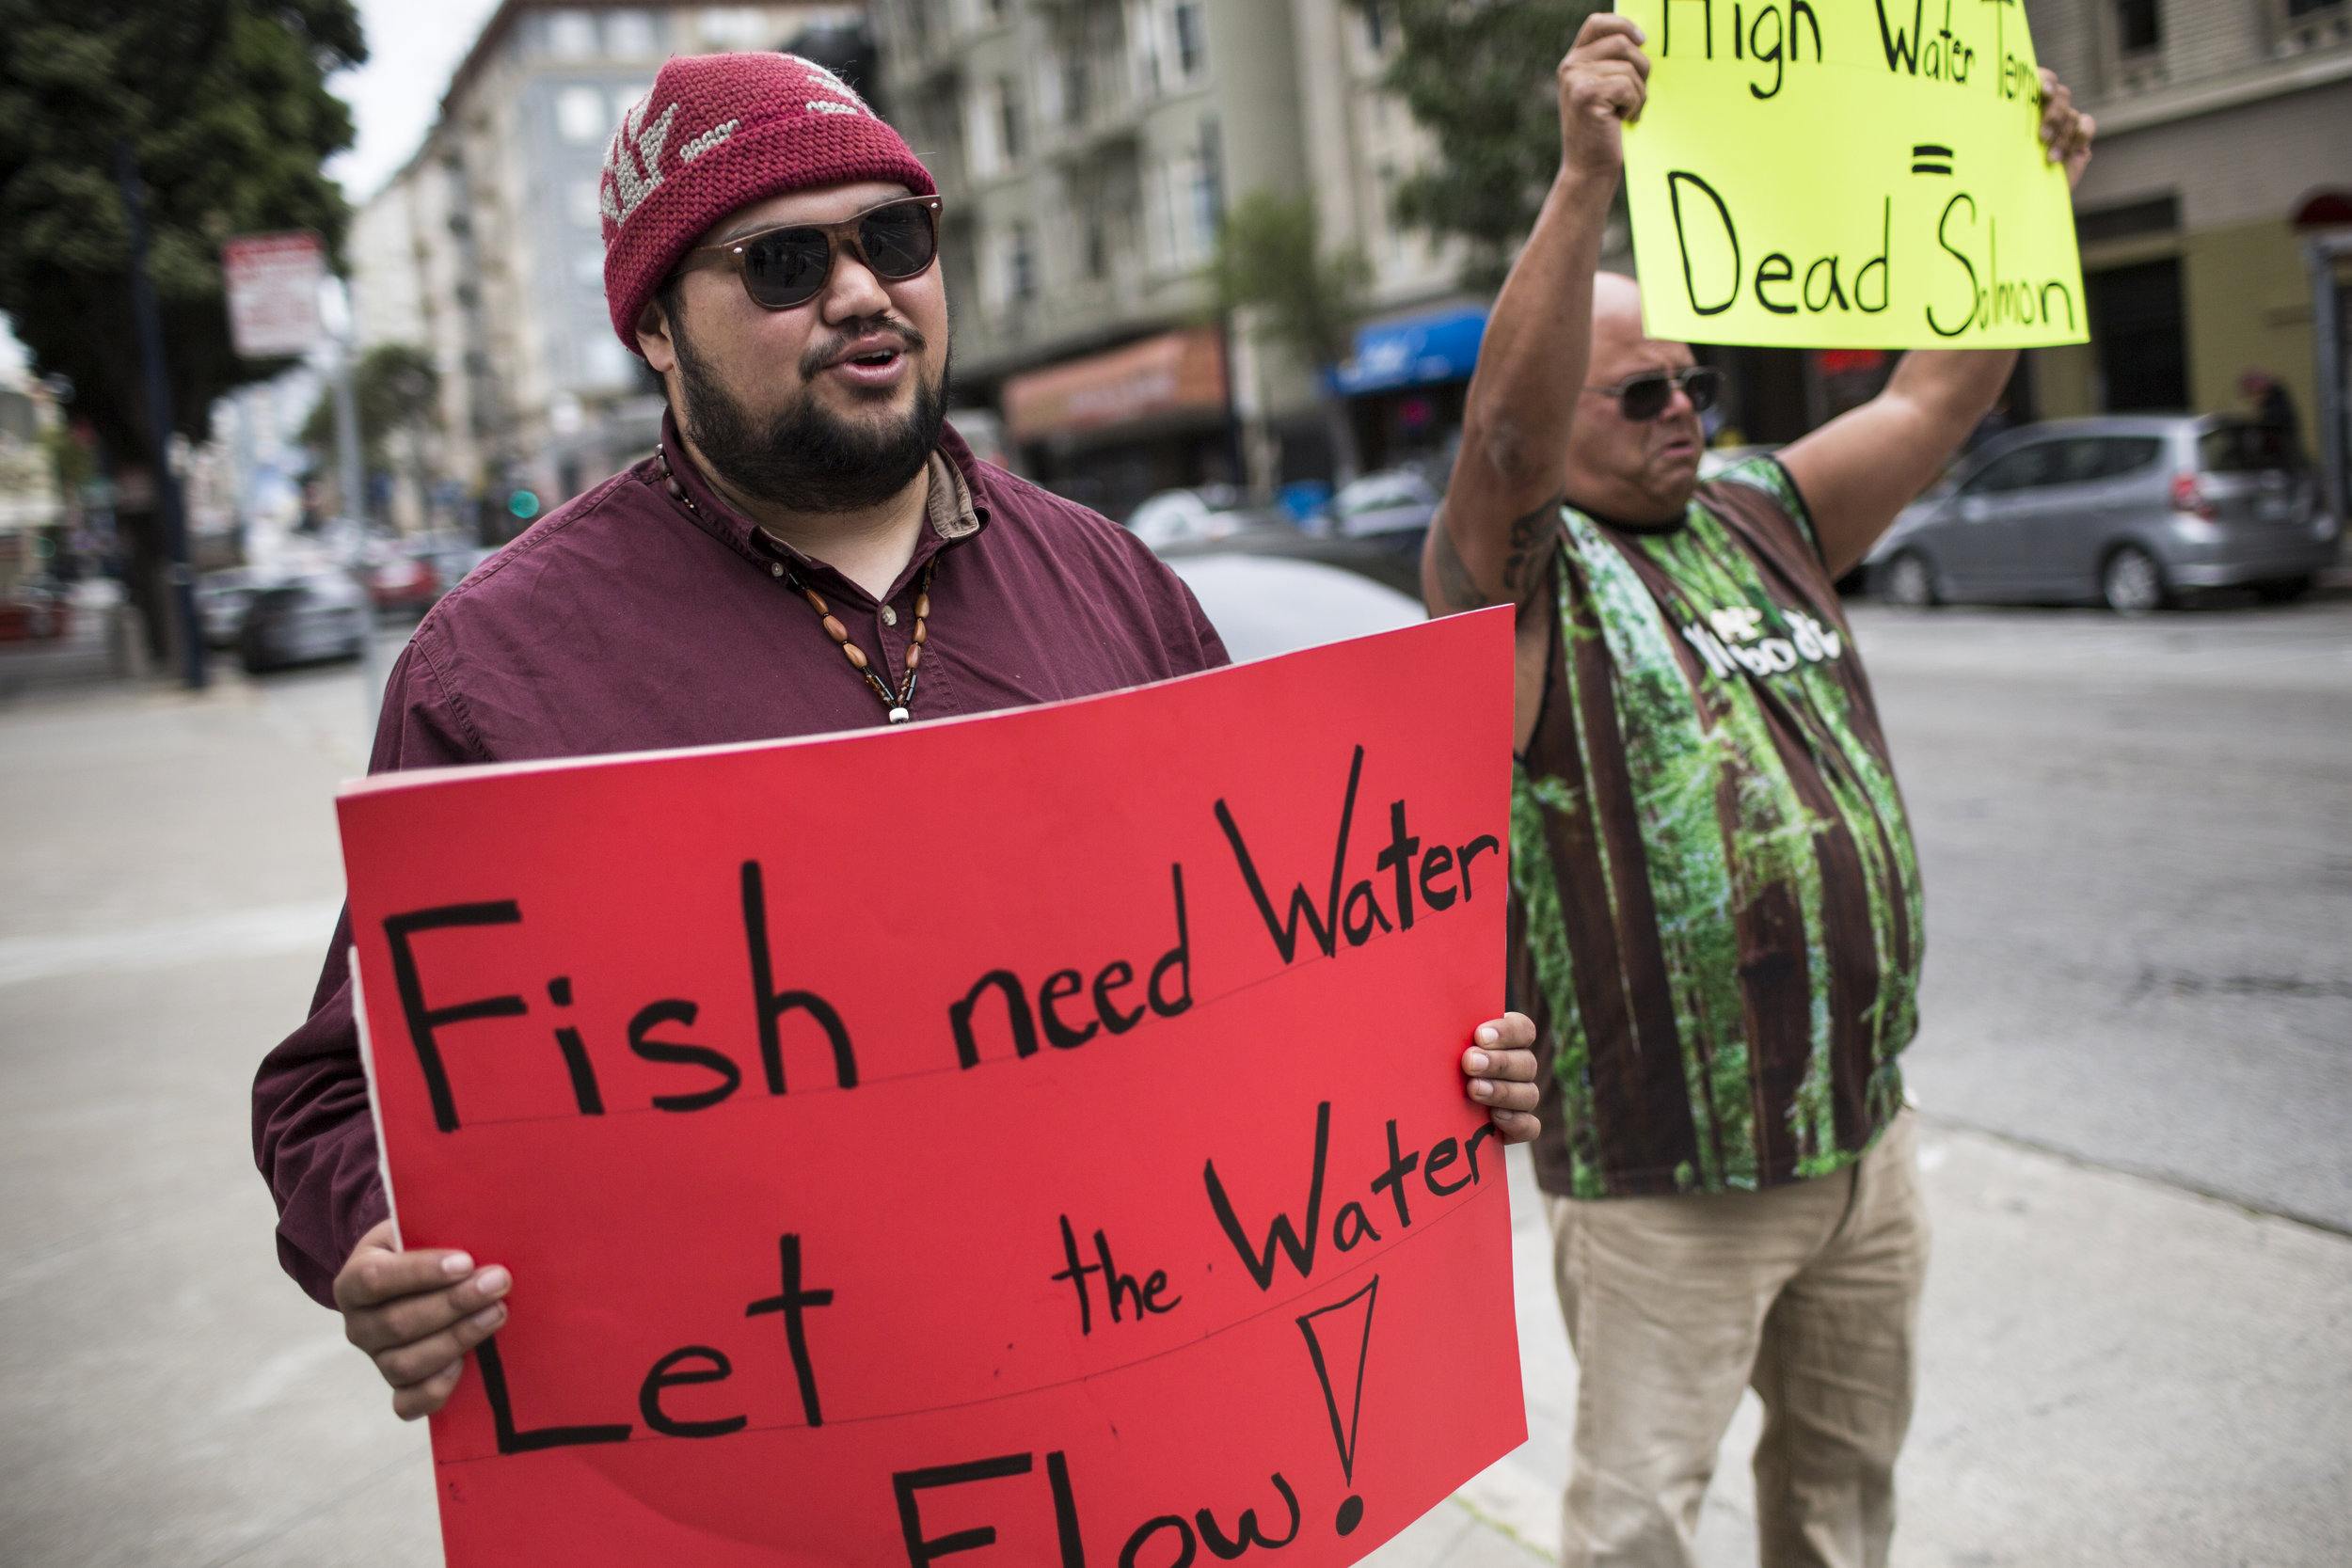 Eldon Kinney and other Yurok Tribe members protest outside the Burton Federal Building in San Francisco on Apr. 10, 2018. Martin do Nascimento / Earthjustice